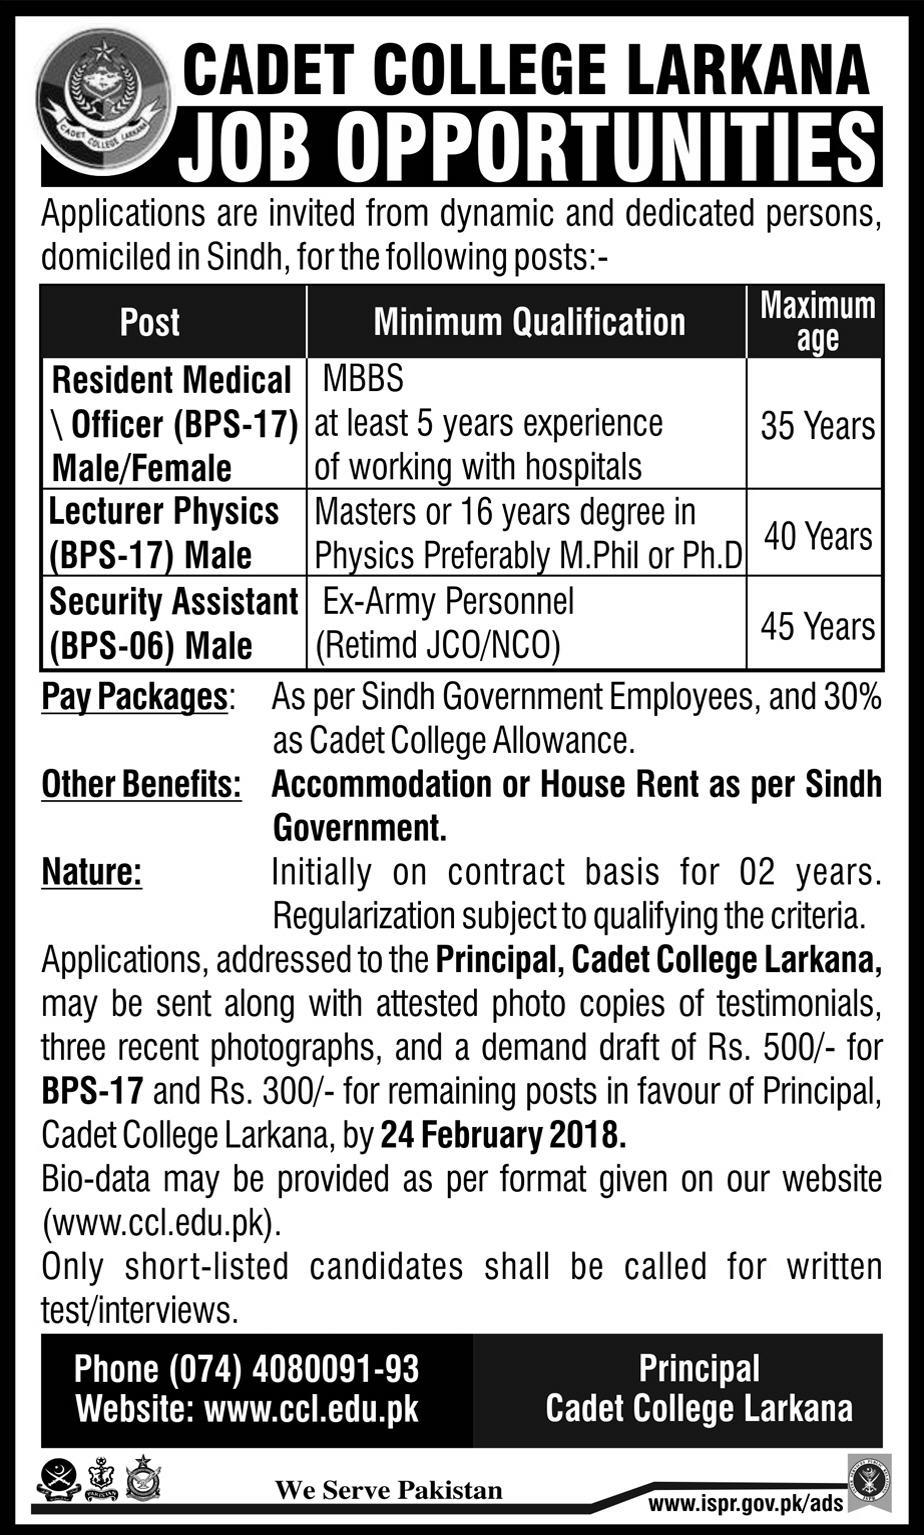 Jobs in Cadet College Larkana 14 February 2018 Daily Express Newspaper